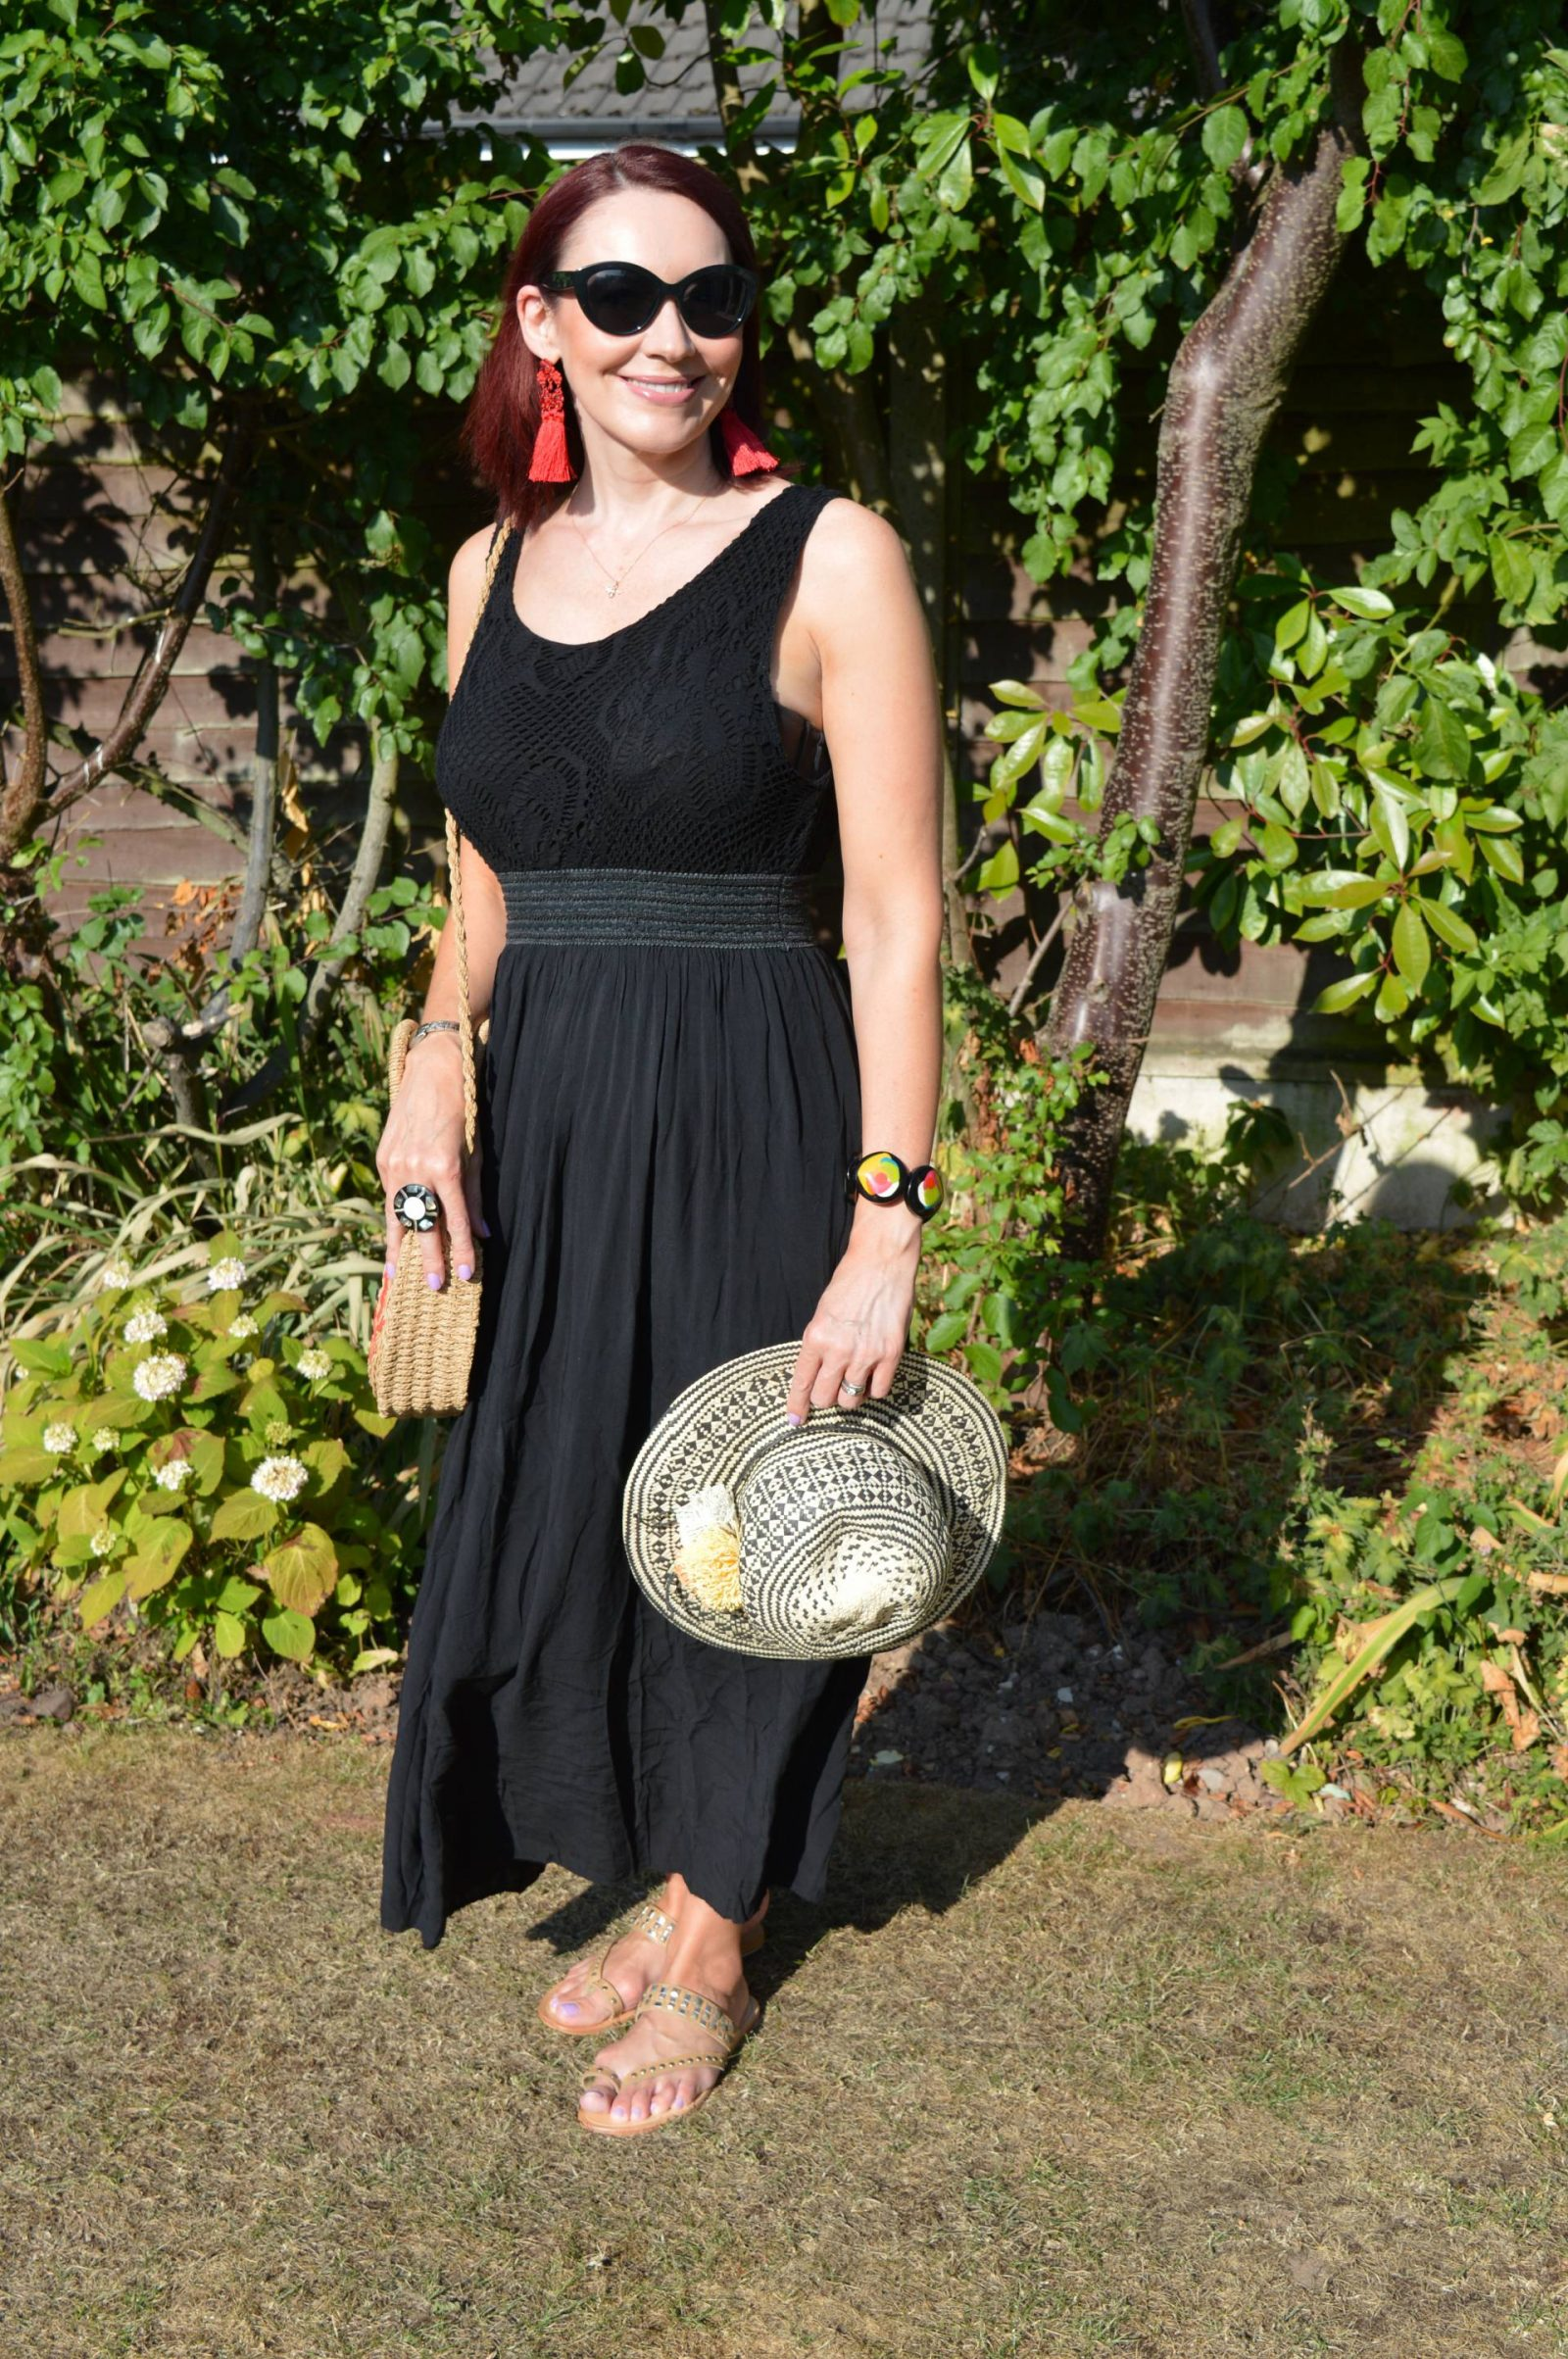 Black maxi dress for a hot Summer's day